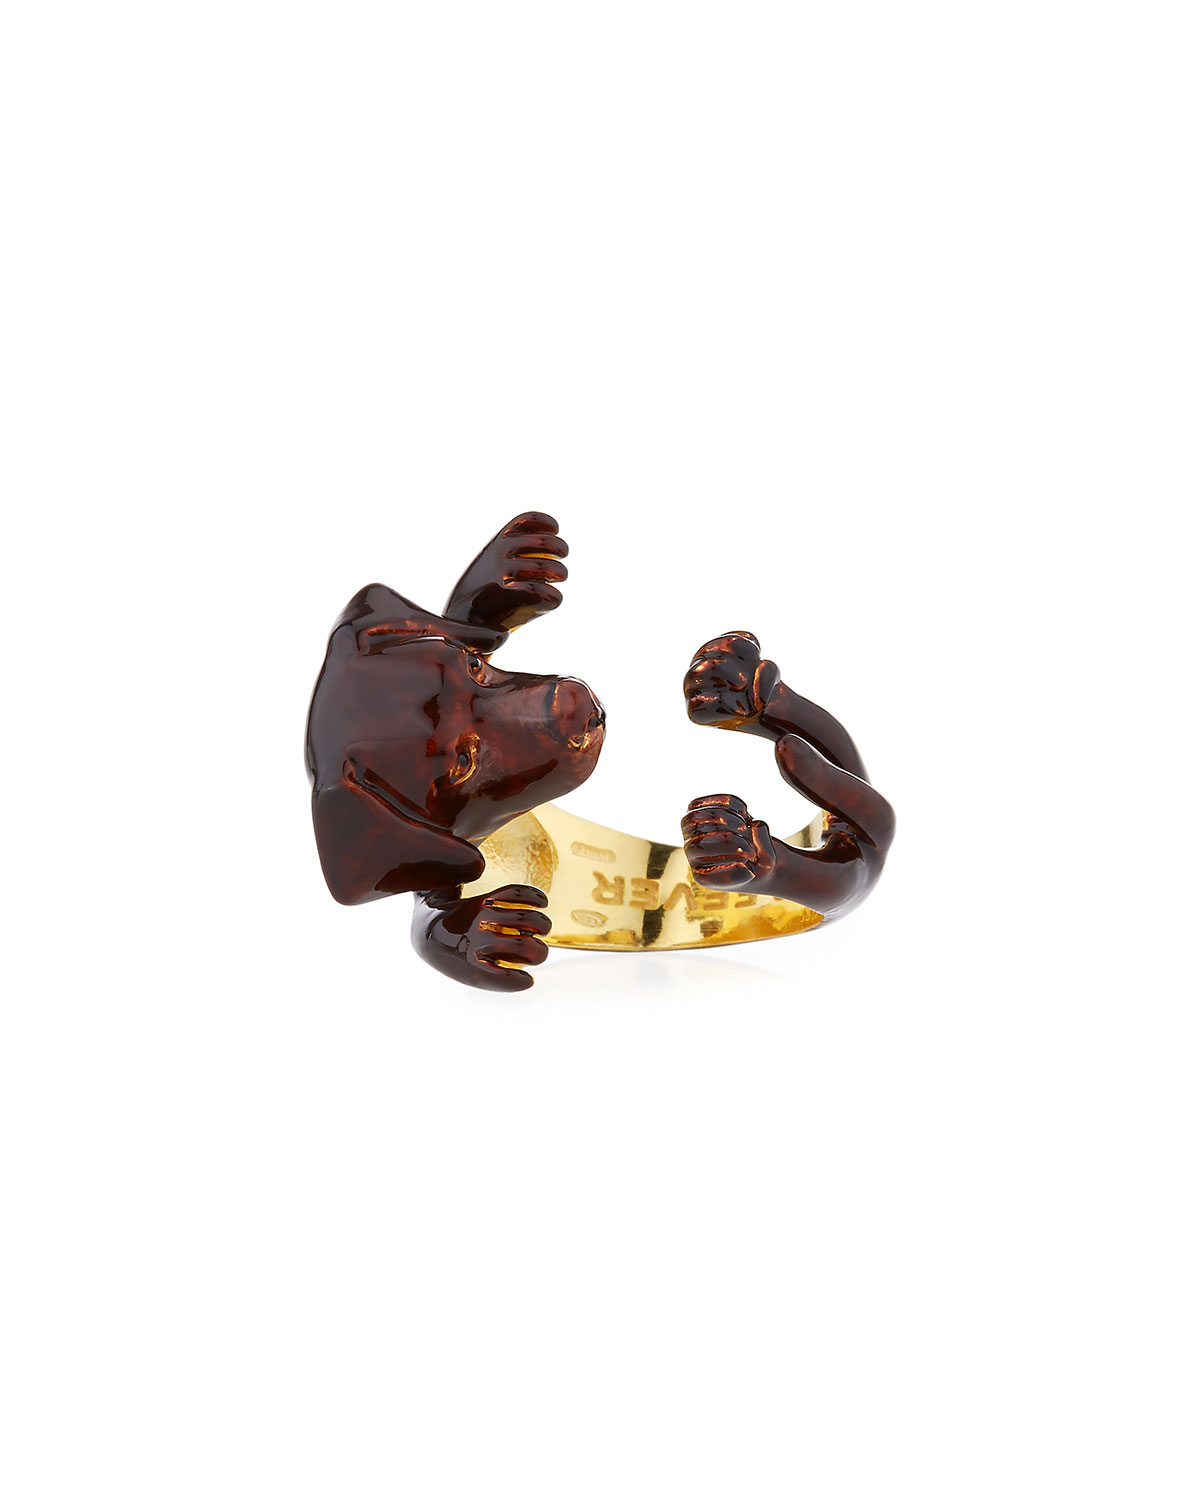 VISCONTI & DU REAU CHOCOLATE LAB PLATED ENAMEL DOG HUG RING, SIZE 6